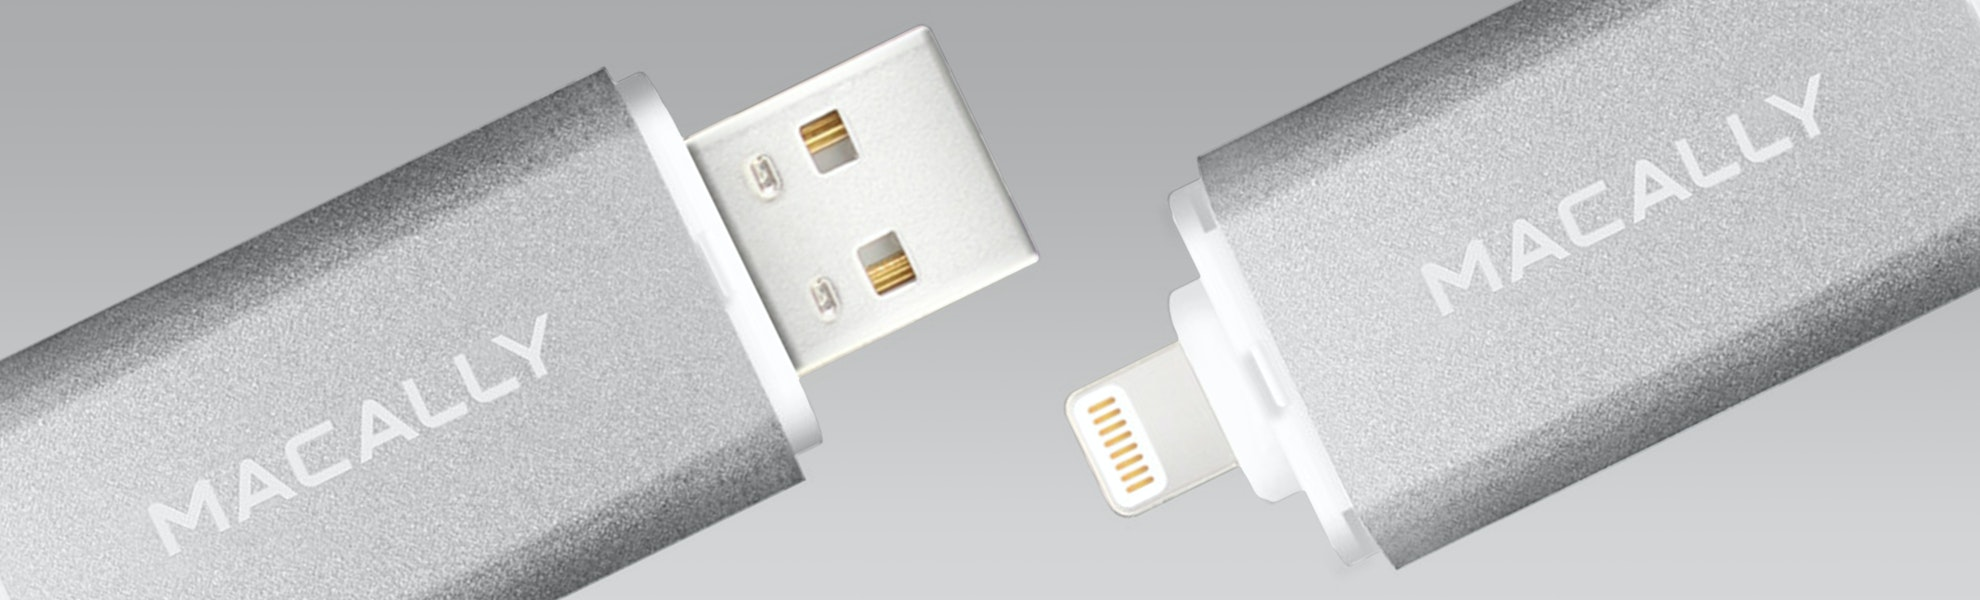 Macally 64GB Lightning/USB Flash Drive